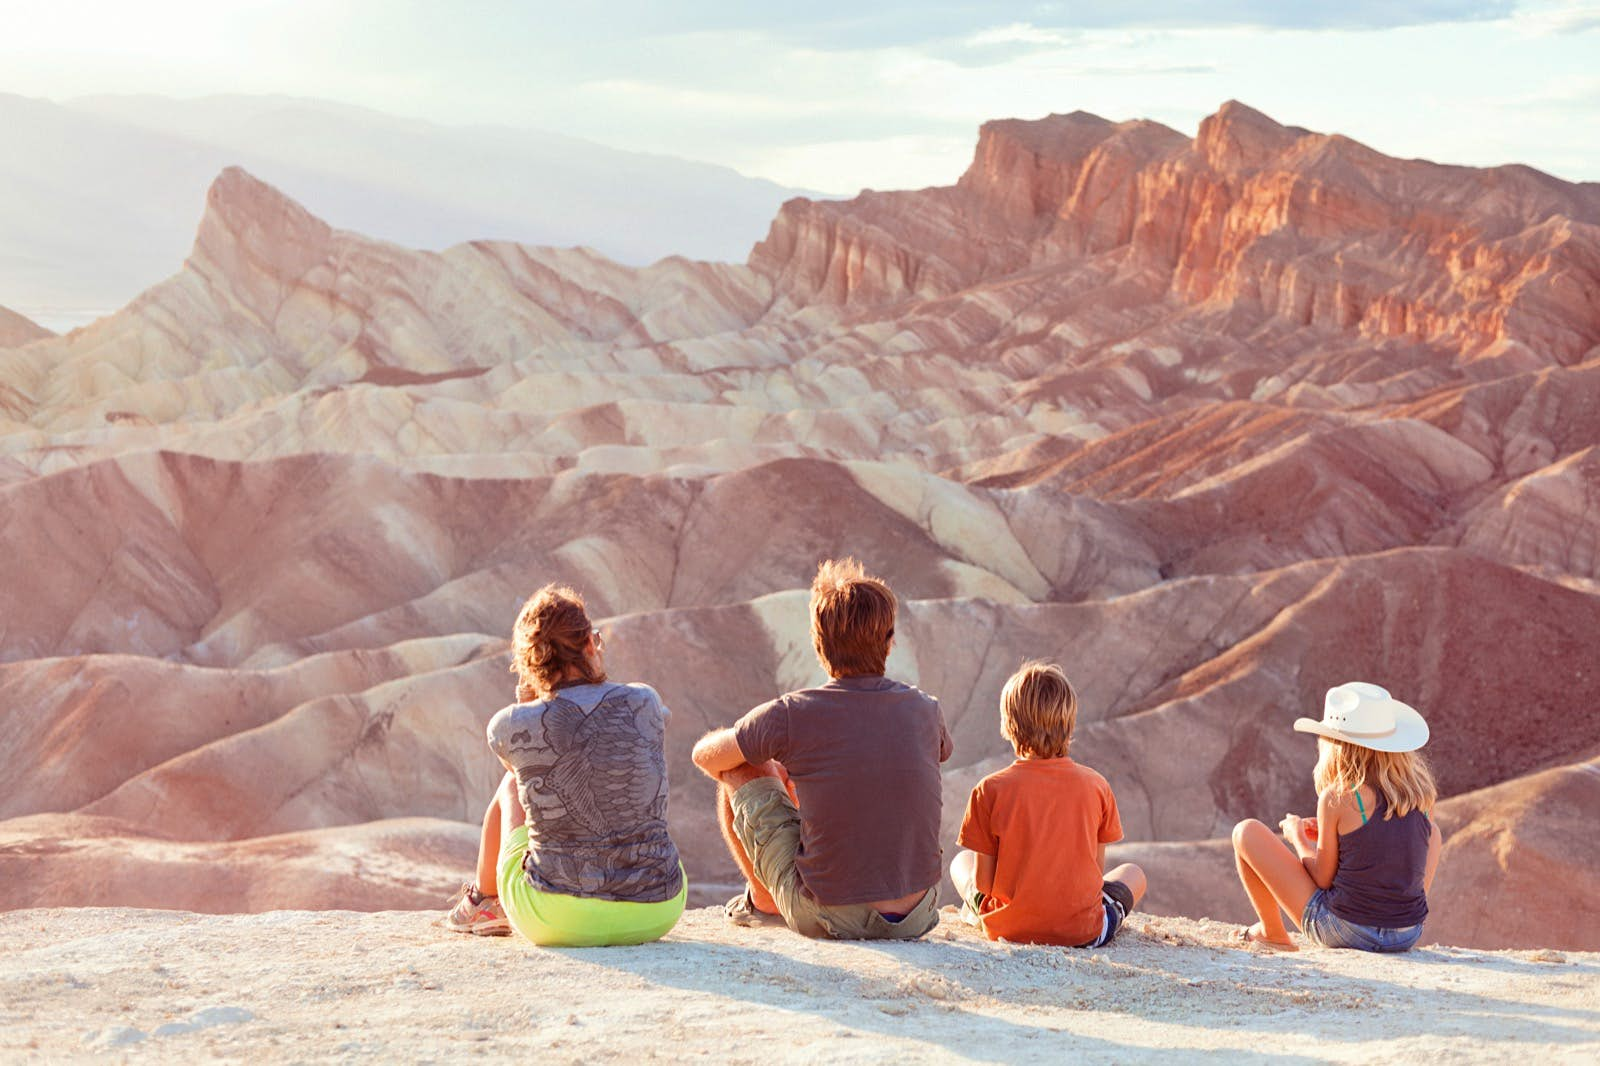 A family of four admires the view at Death Valley